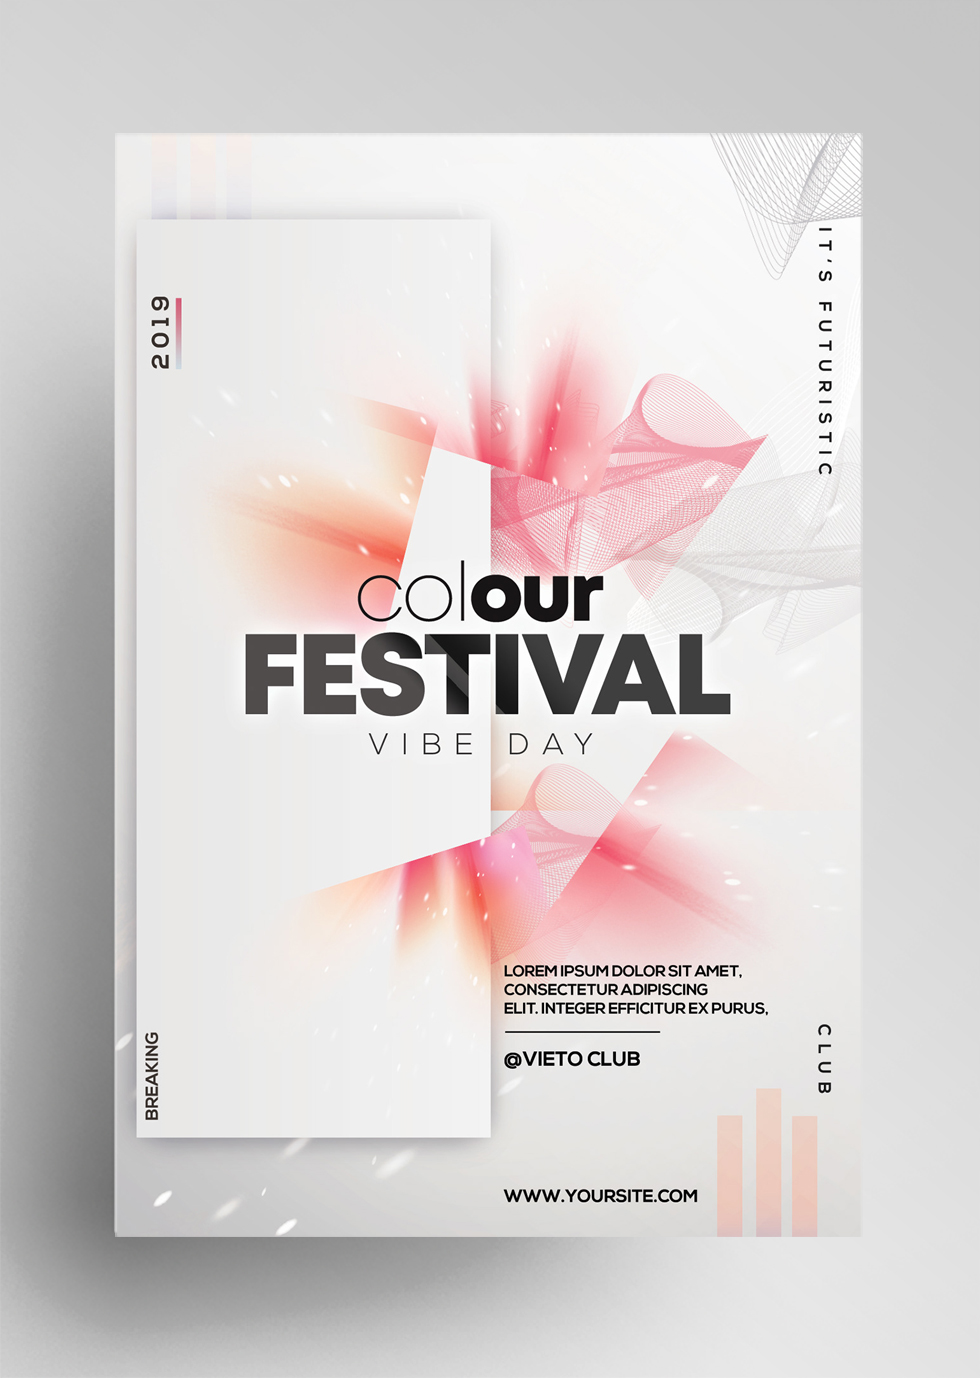 Color Festival - Free Alternative PSD Flyer Template